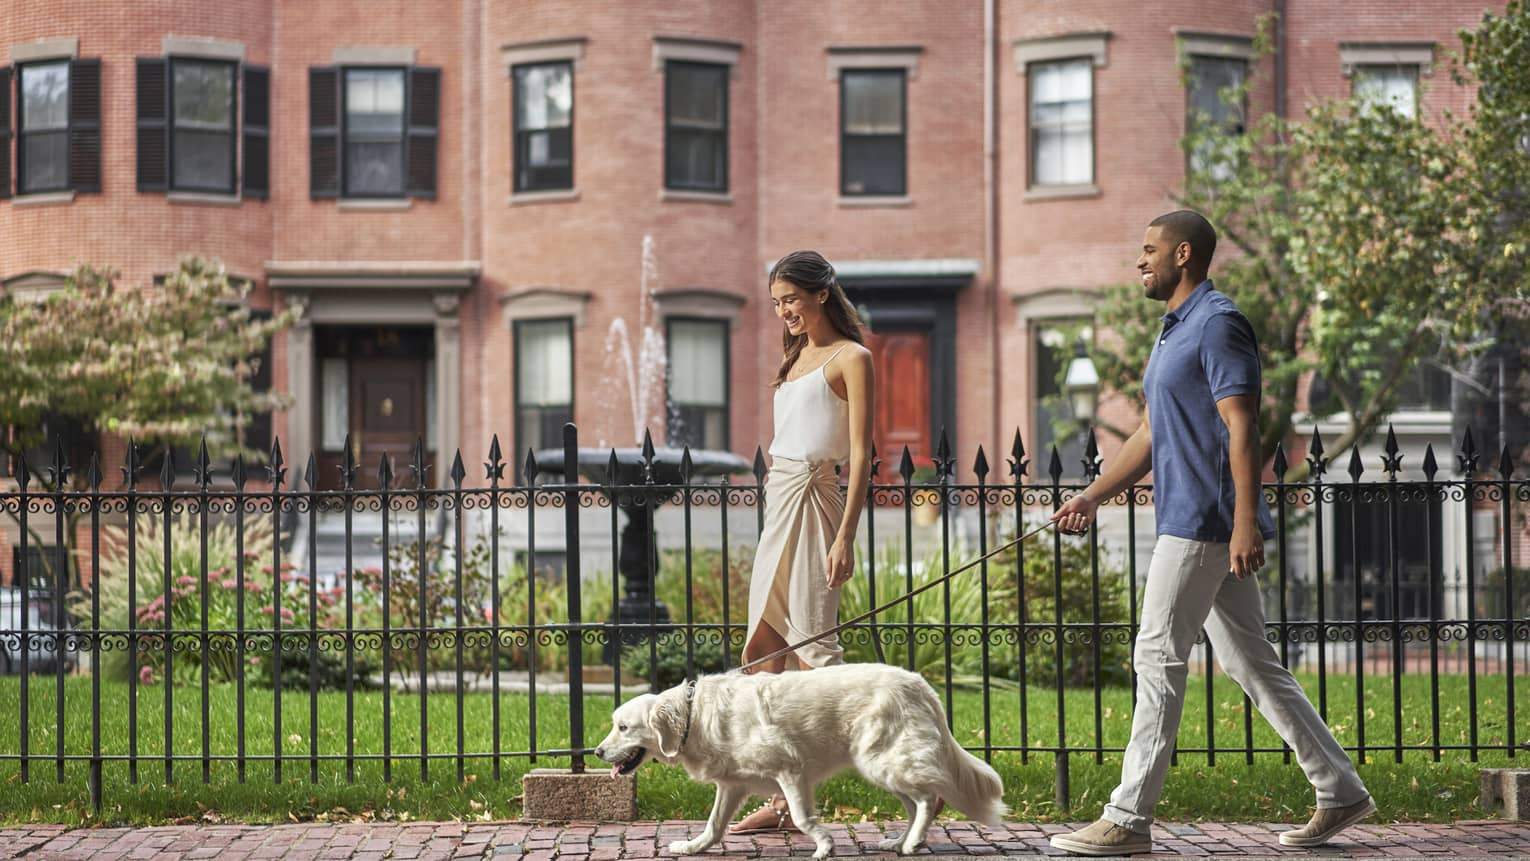 Man and woman walk their Golden Retriever in front of a Boston brownstone